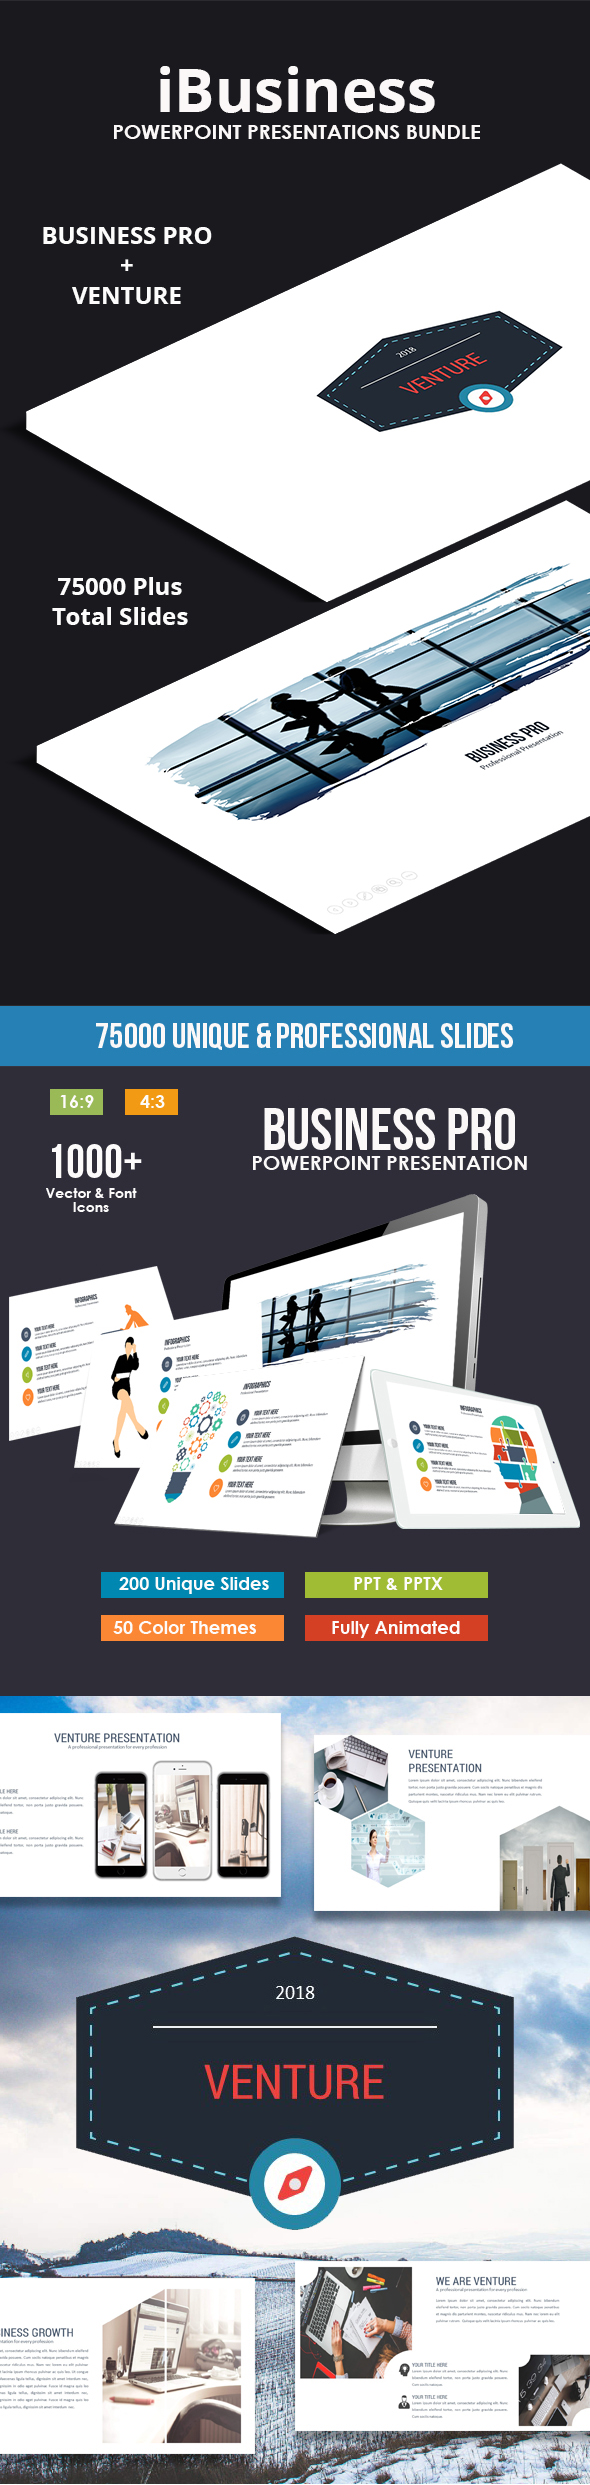 iBusiness 2018 Powerpoint Bundle - Business PowerPoint Templates